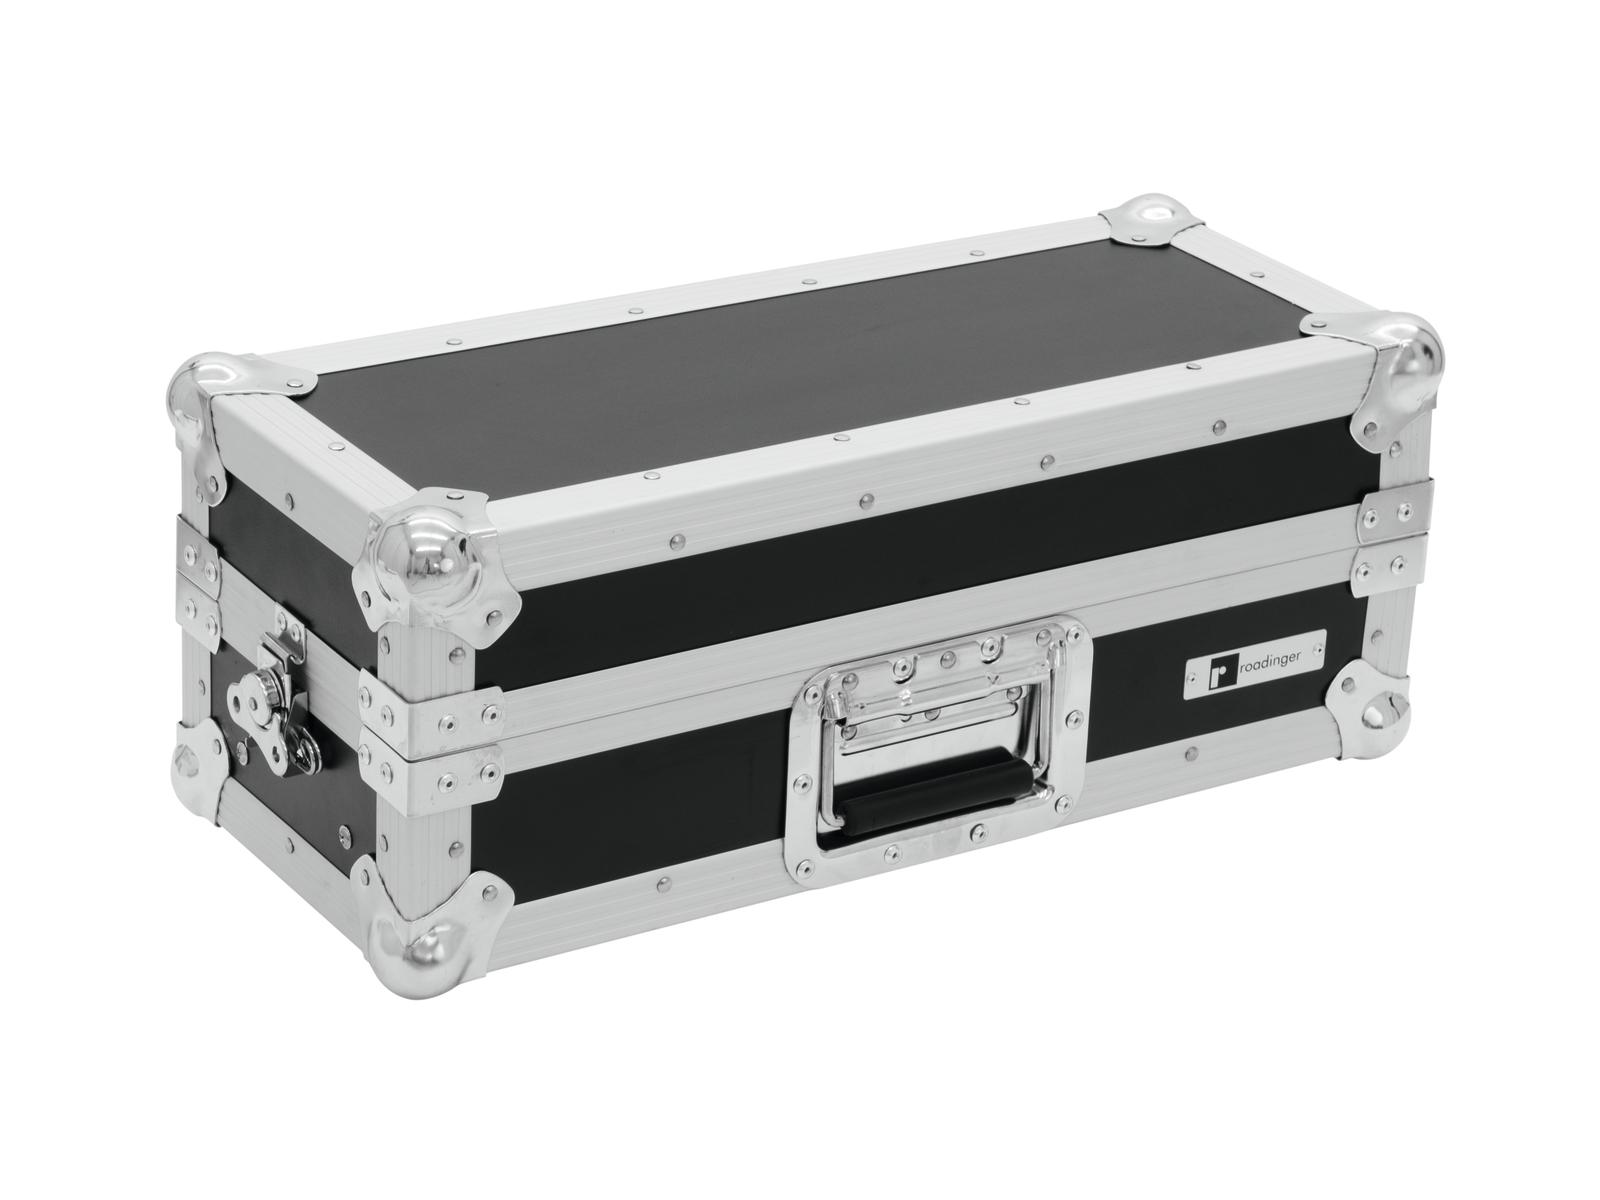 Flight Case Custodia per Dj Mixer Audio Luci Inclinato Roadinger MCA-19-N